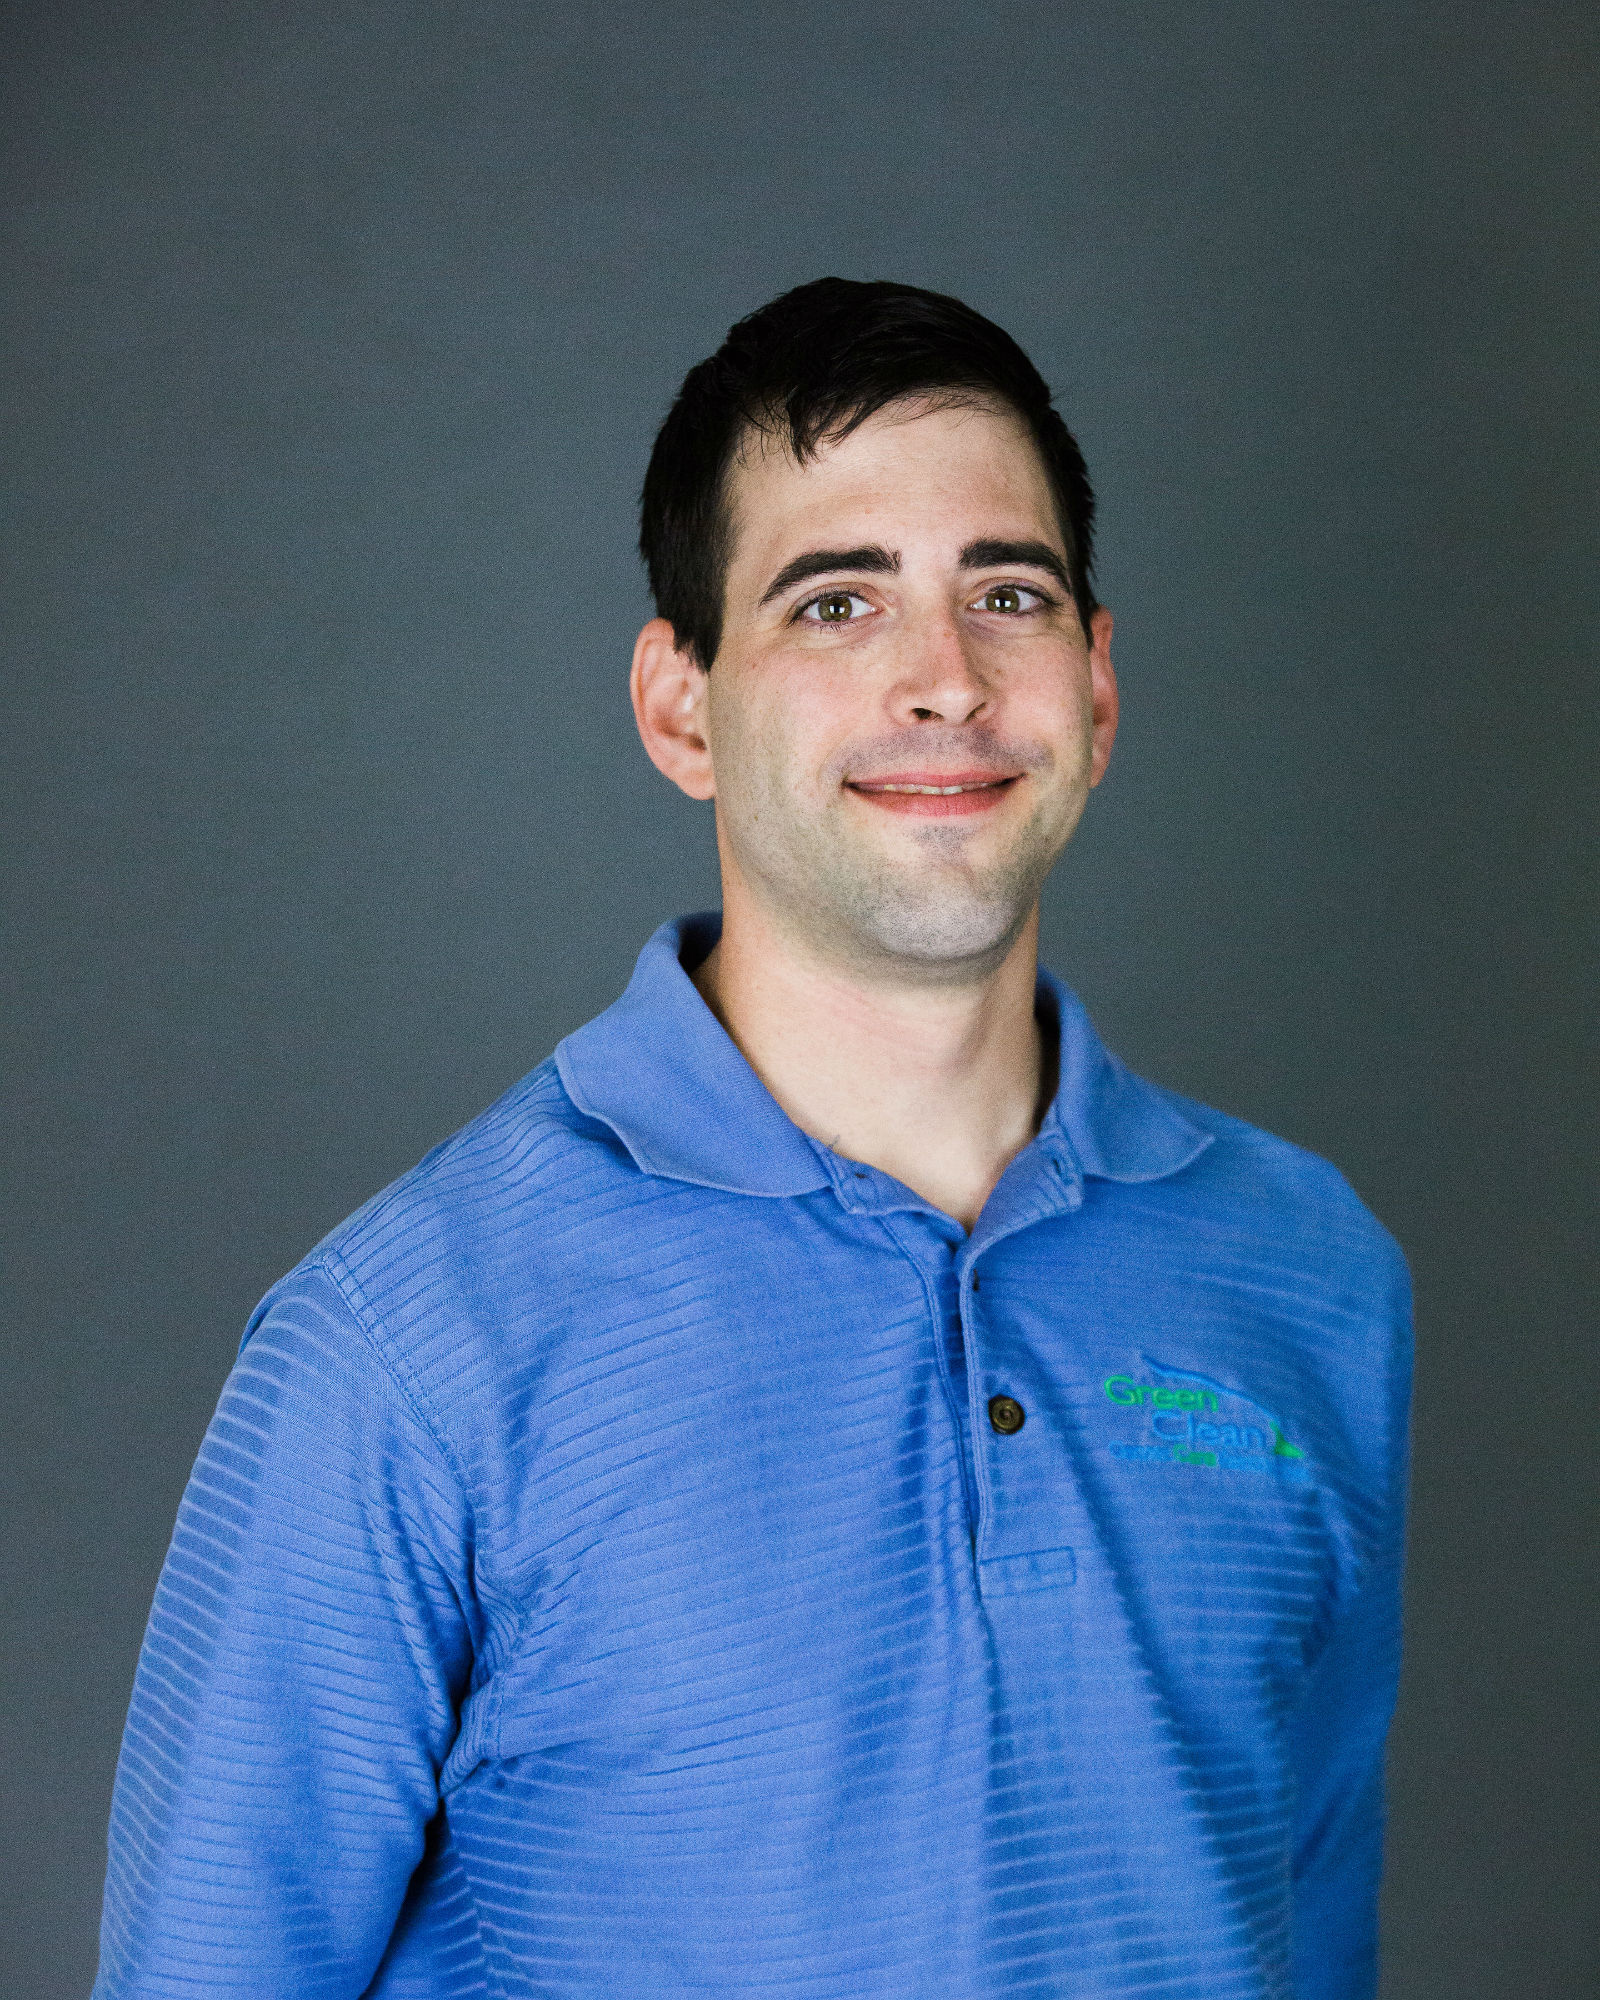 Dan Therrien Mitigation Project Manager